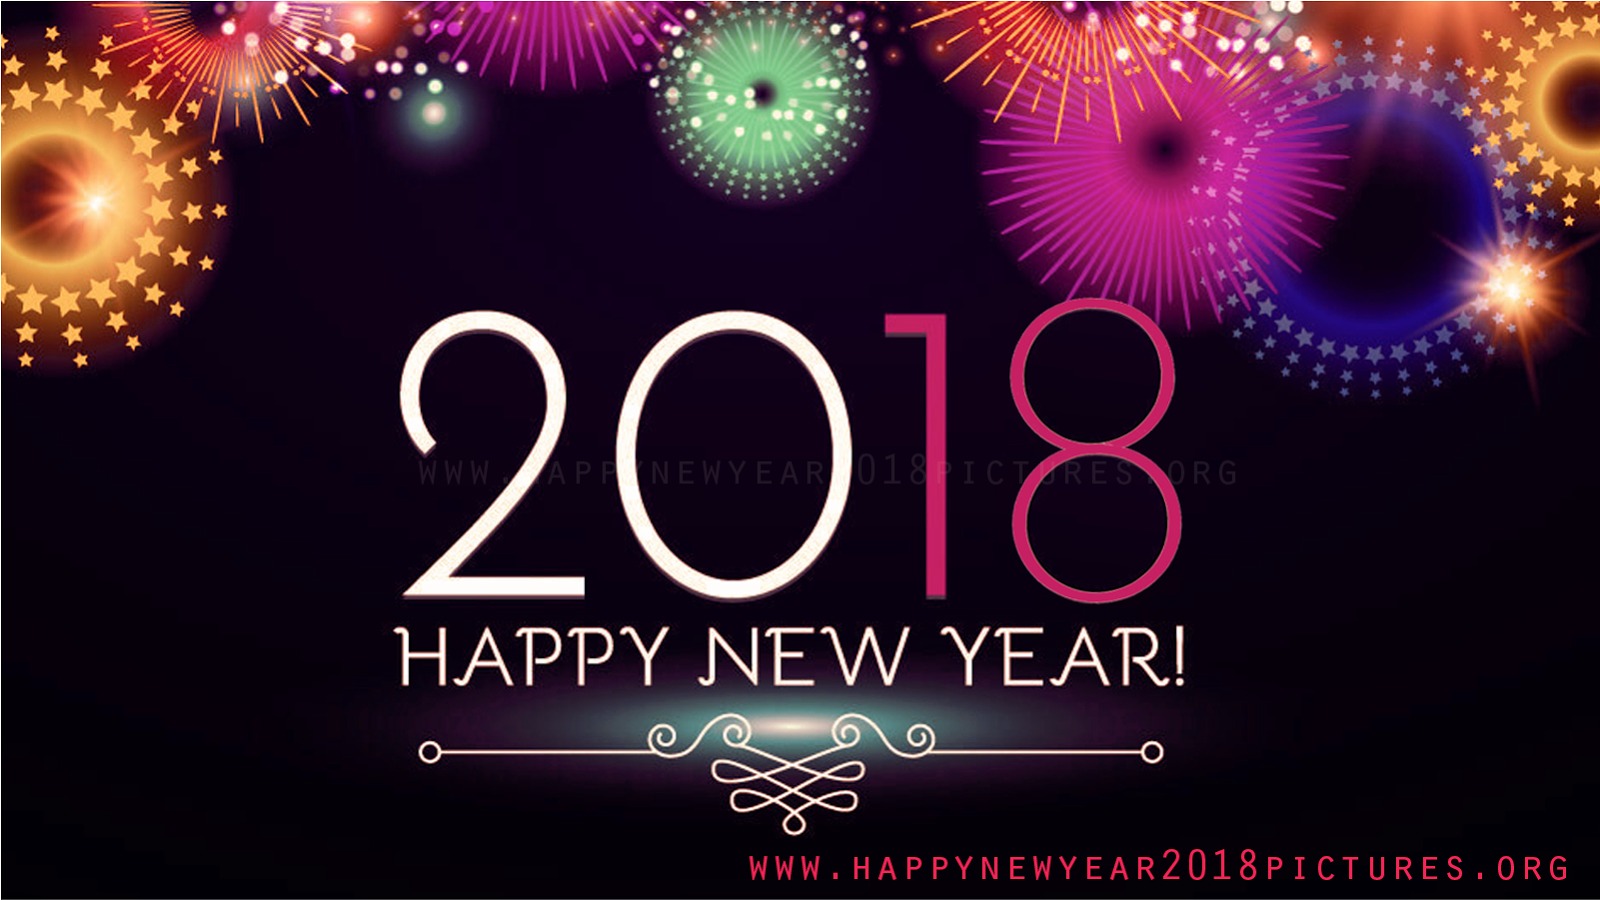 Happy New Year 2018 HD Wallpapers wishes pictures images